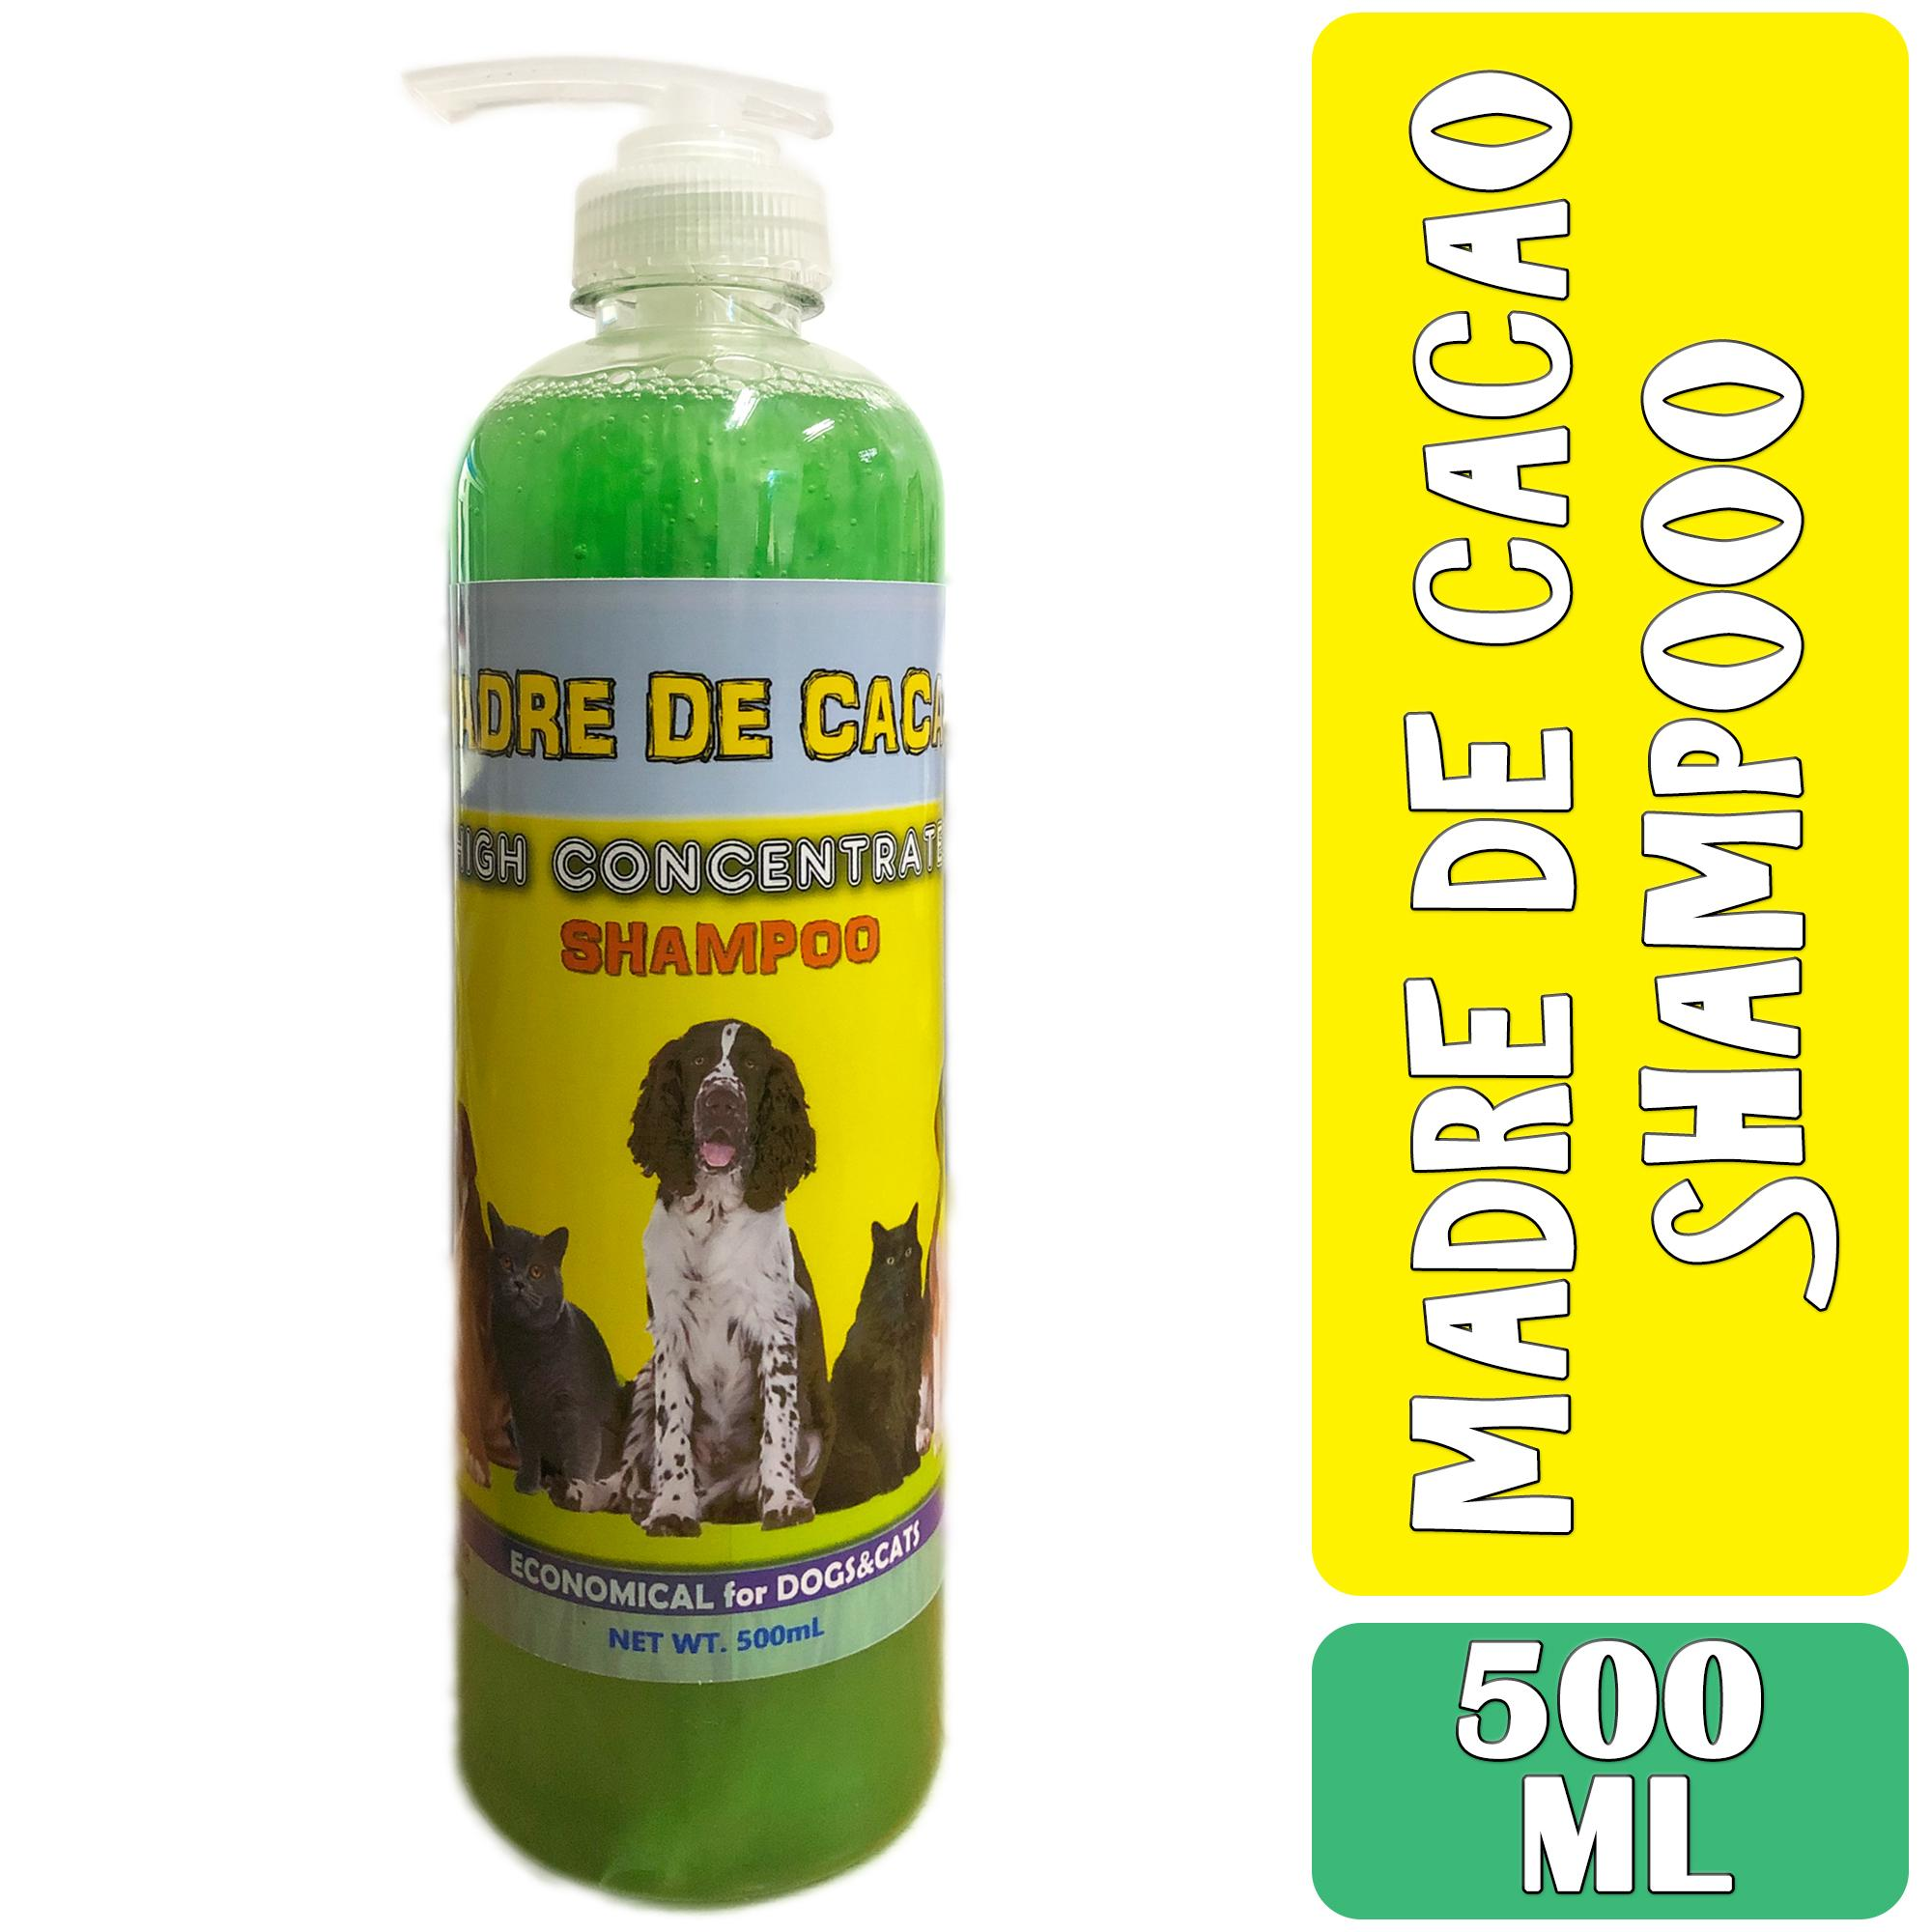 Madre De Cacao Shampoo With Guava Extract Supplier 500 Ml For Dogs And Cats, Anti-Mange, Anti-Ticks, Anti-Bacterial By Madre De Cacao Products.